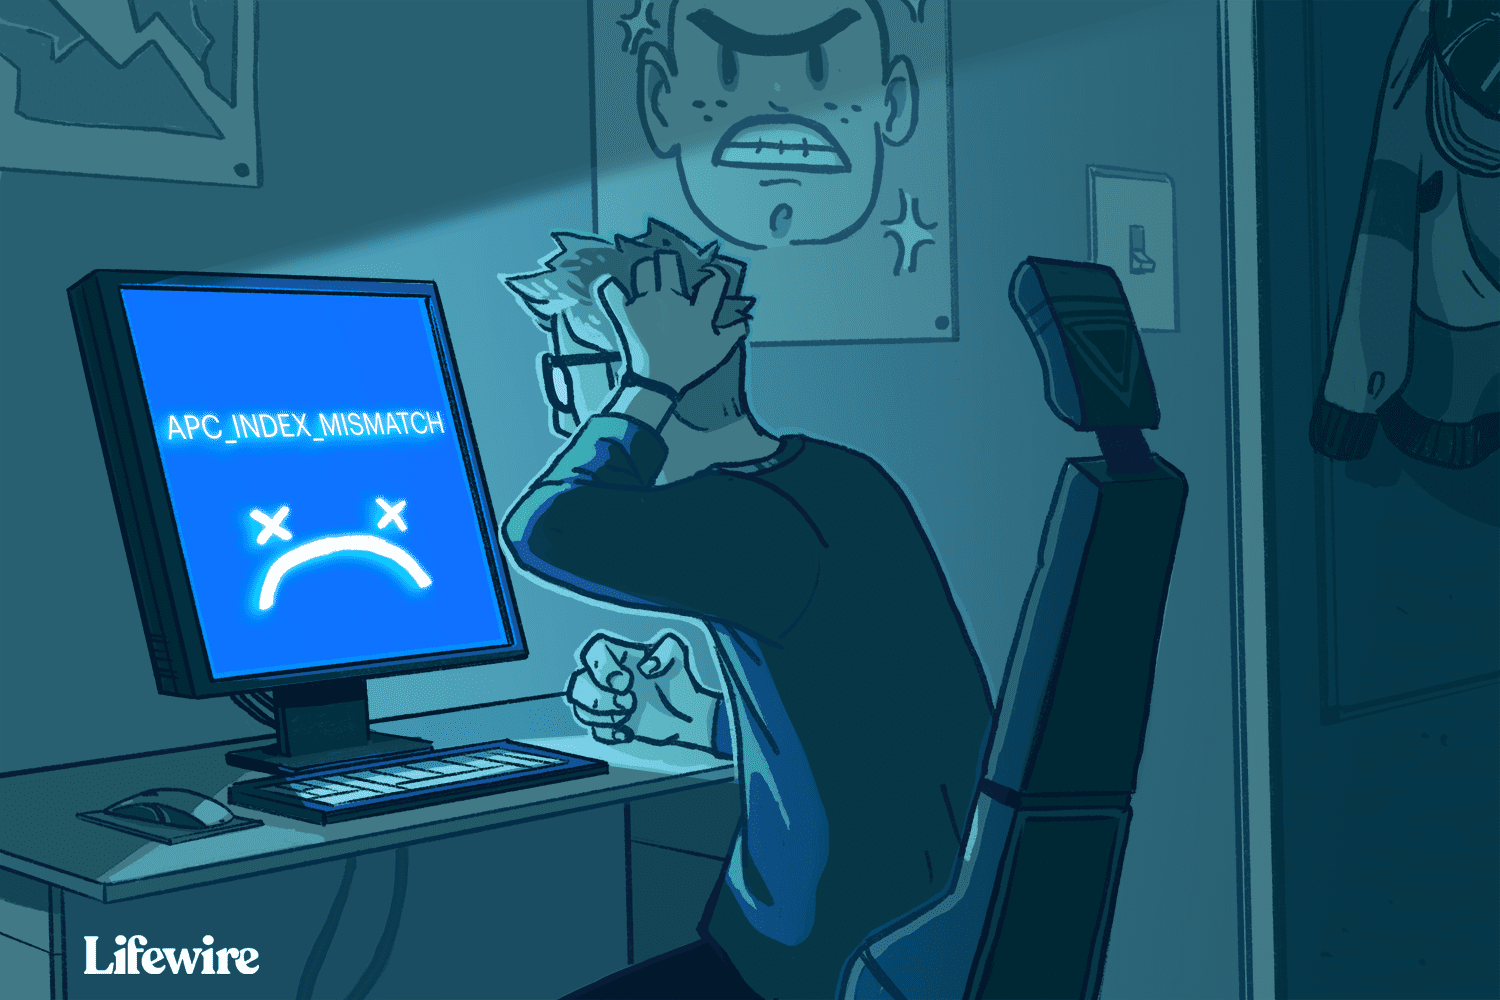 Illustration of a frustrated person with a blue screen of death and